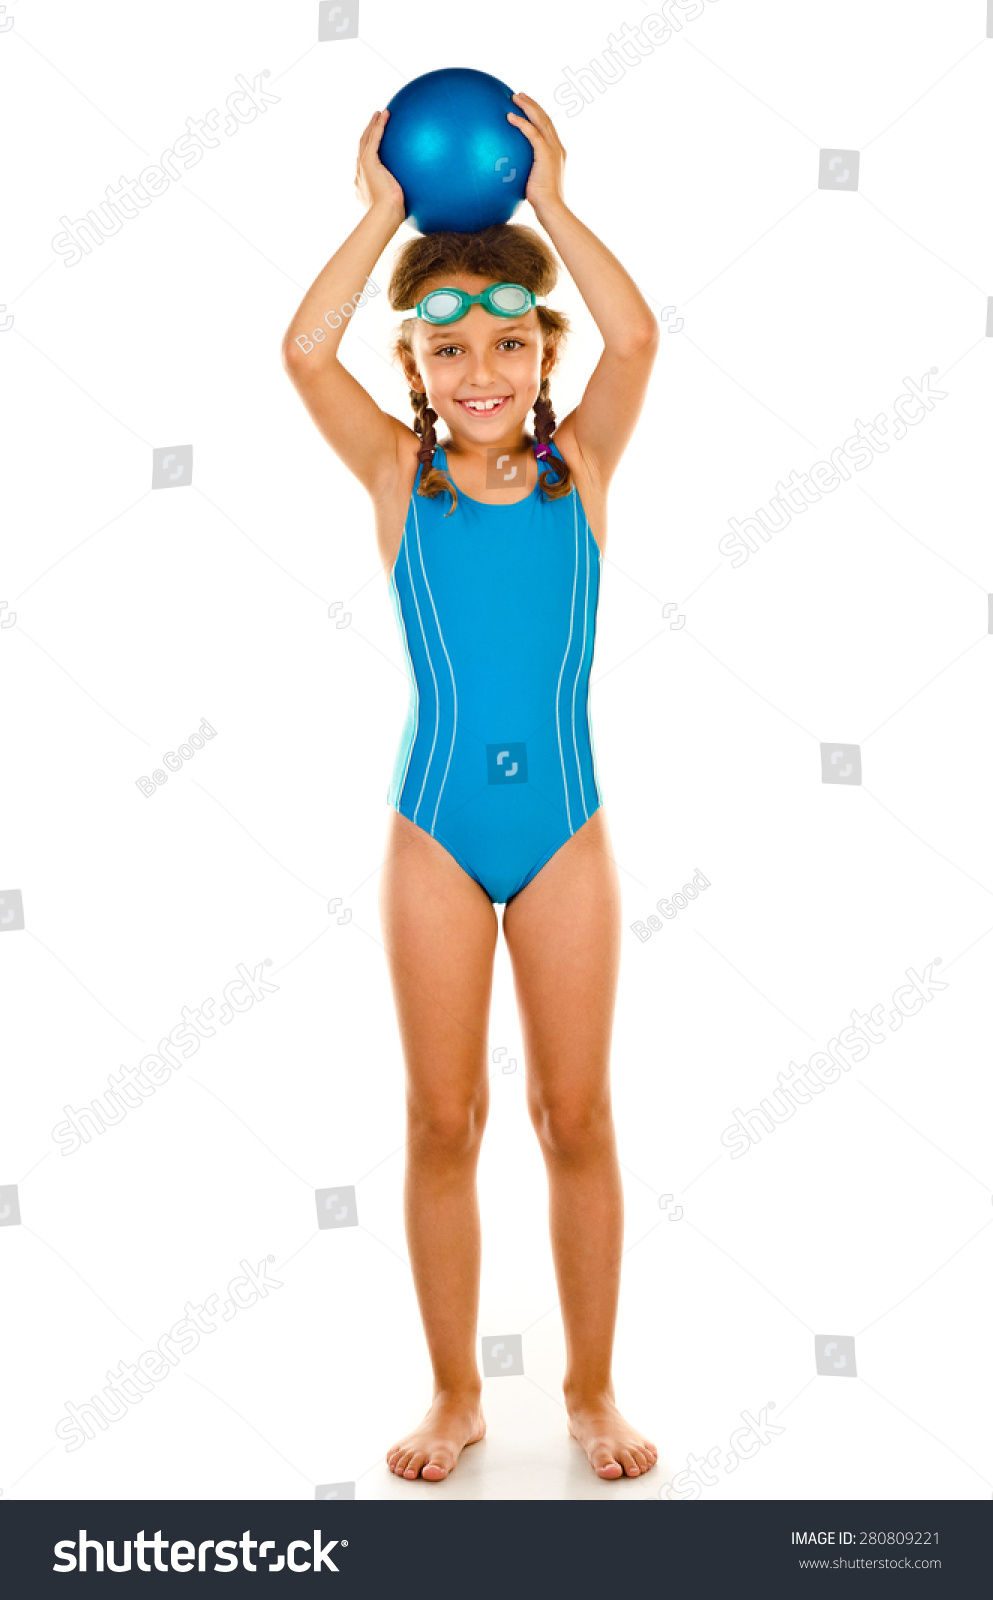 girl in swimsuit images - usseek.com